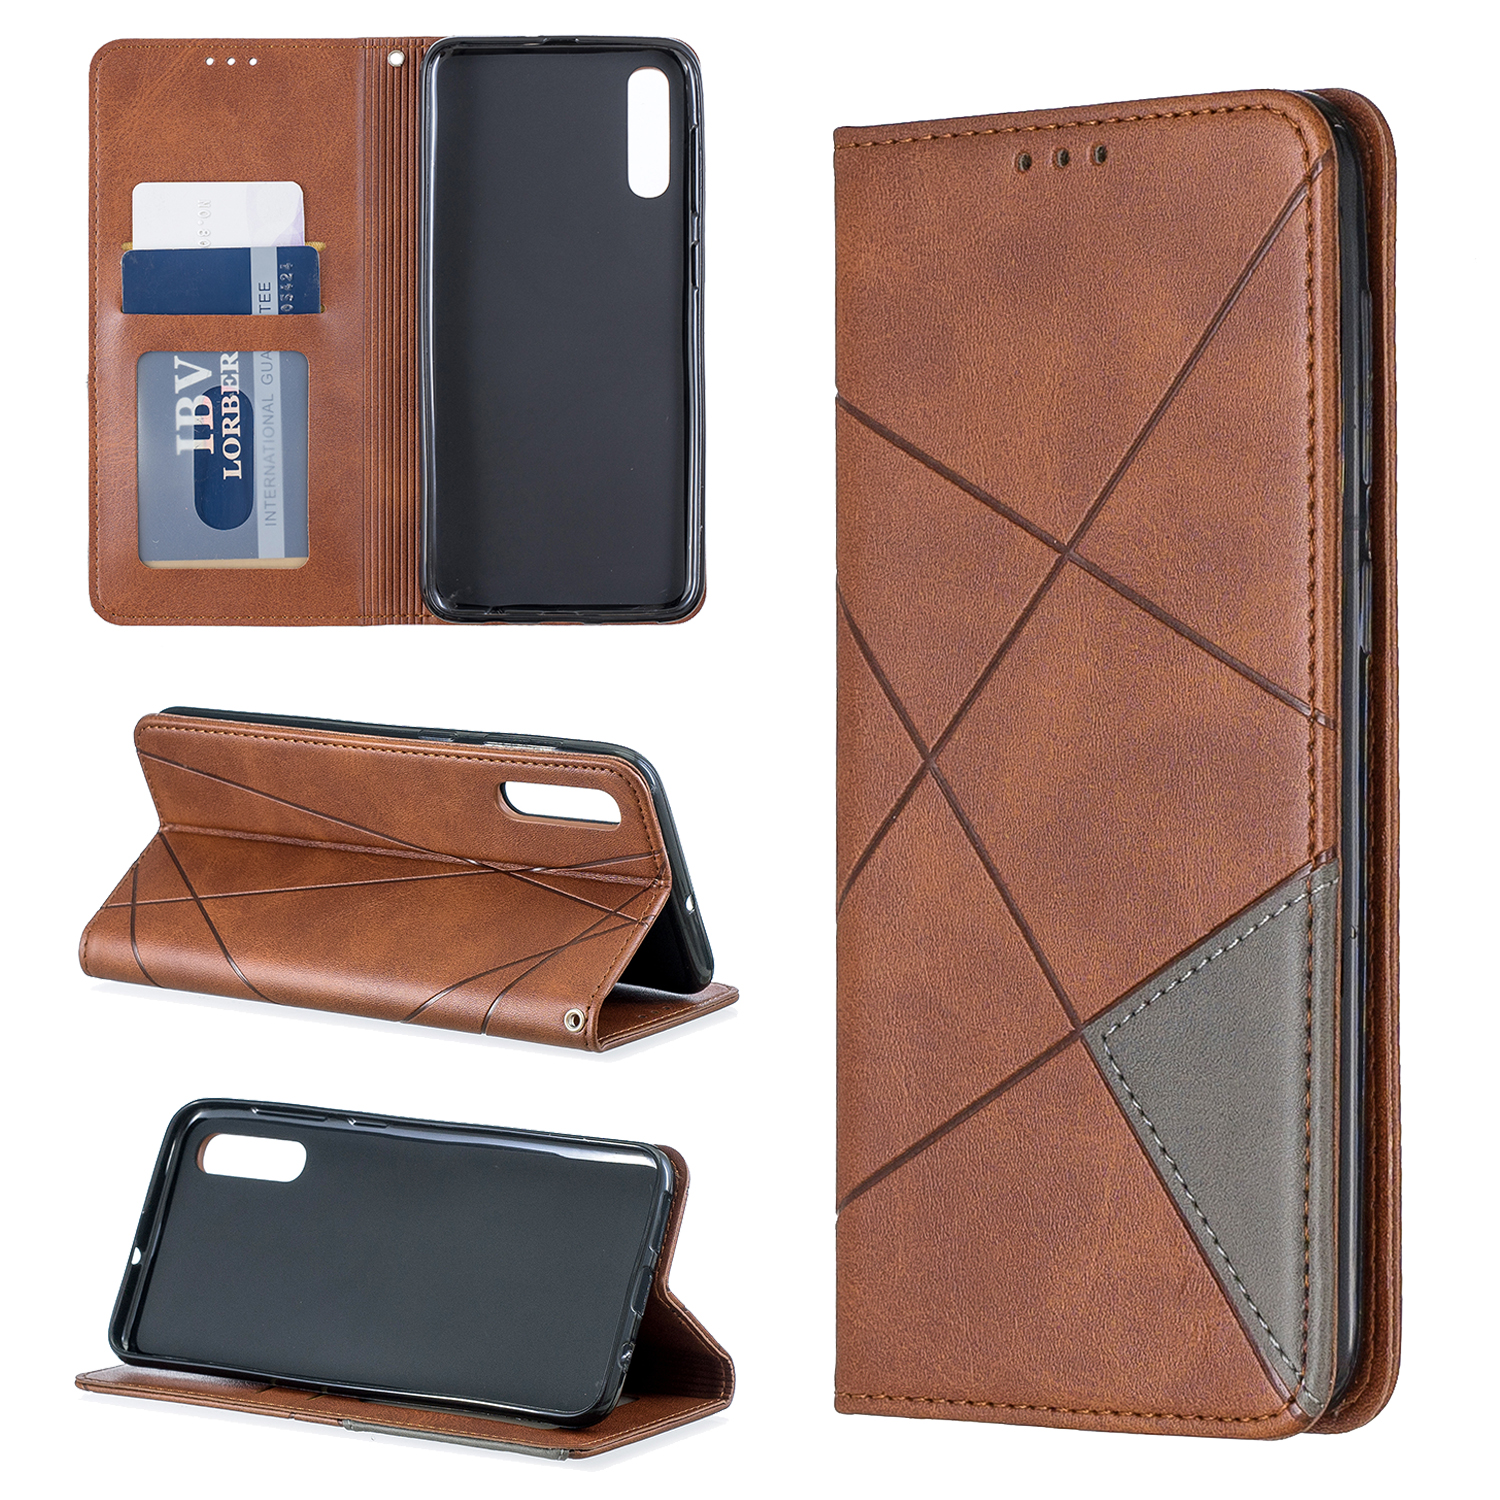 Leather Flip A50 A60 A70 A40 A30 A20E A10 M10 A80 <font><b>Case</b></font> For <font><b>Samsung</b></font> Galaxy <font><b>S9</b></font> S10 J4 J6 Plus Note9 Note 10Pro Magnet Cover image